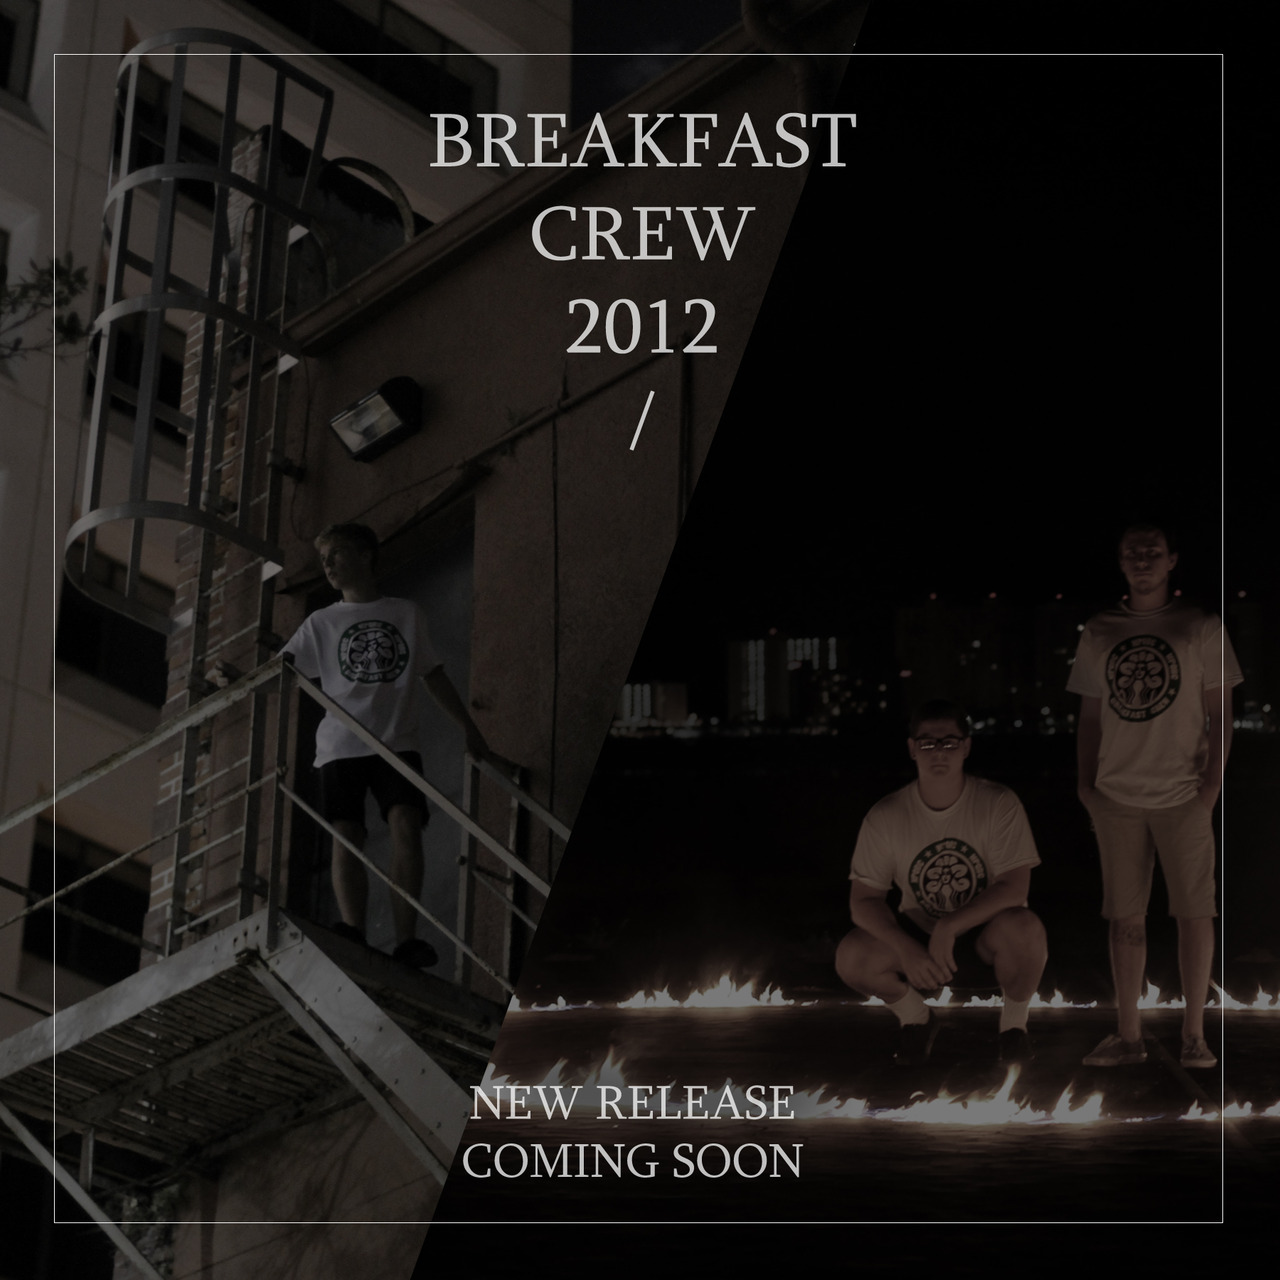 https://www.facebook.com/breakfastcrewclothing